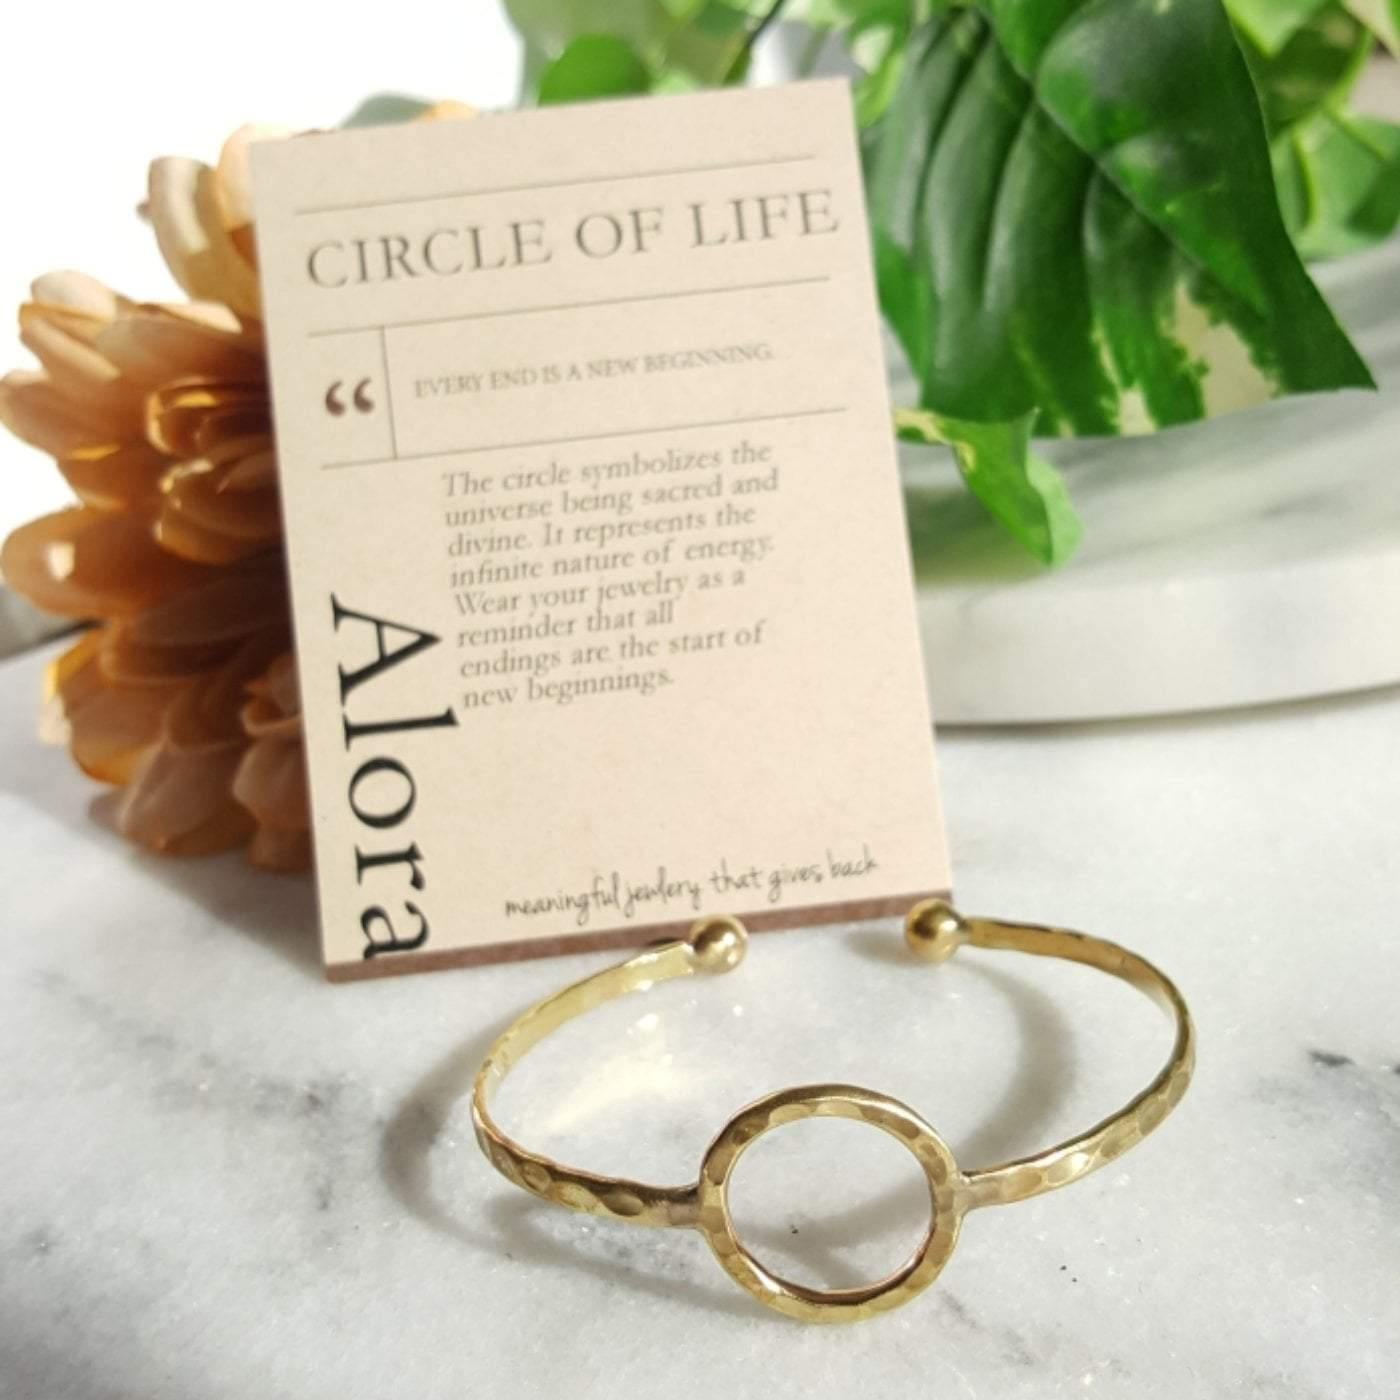 Circle Bangle - Meaningful and Beautiful